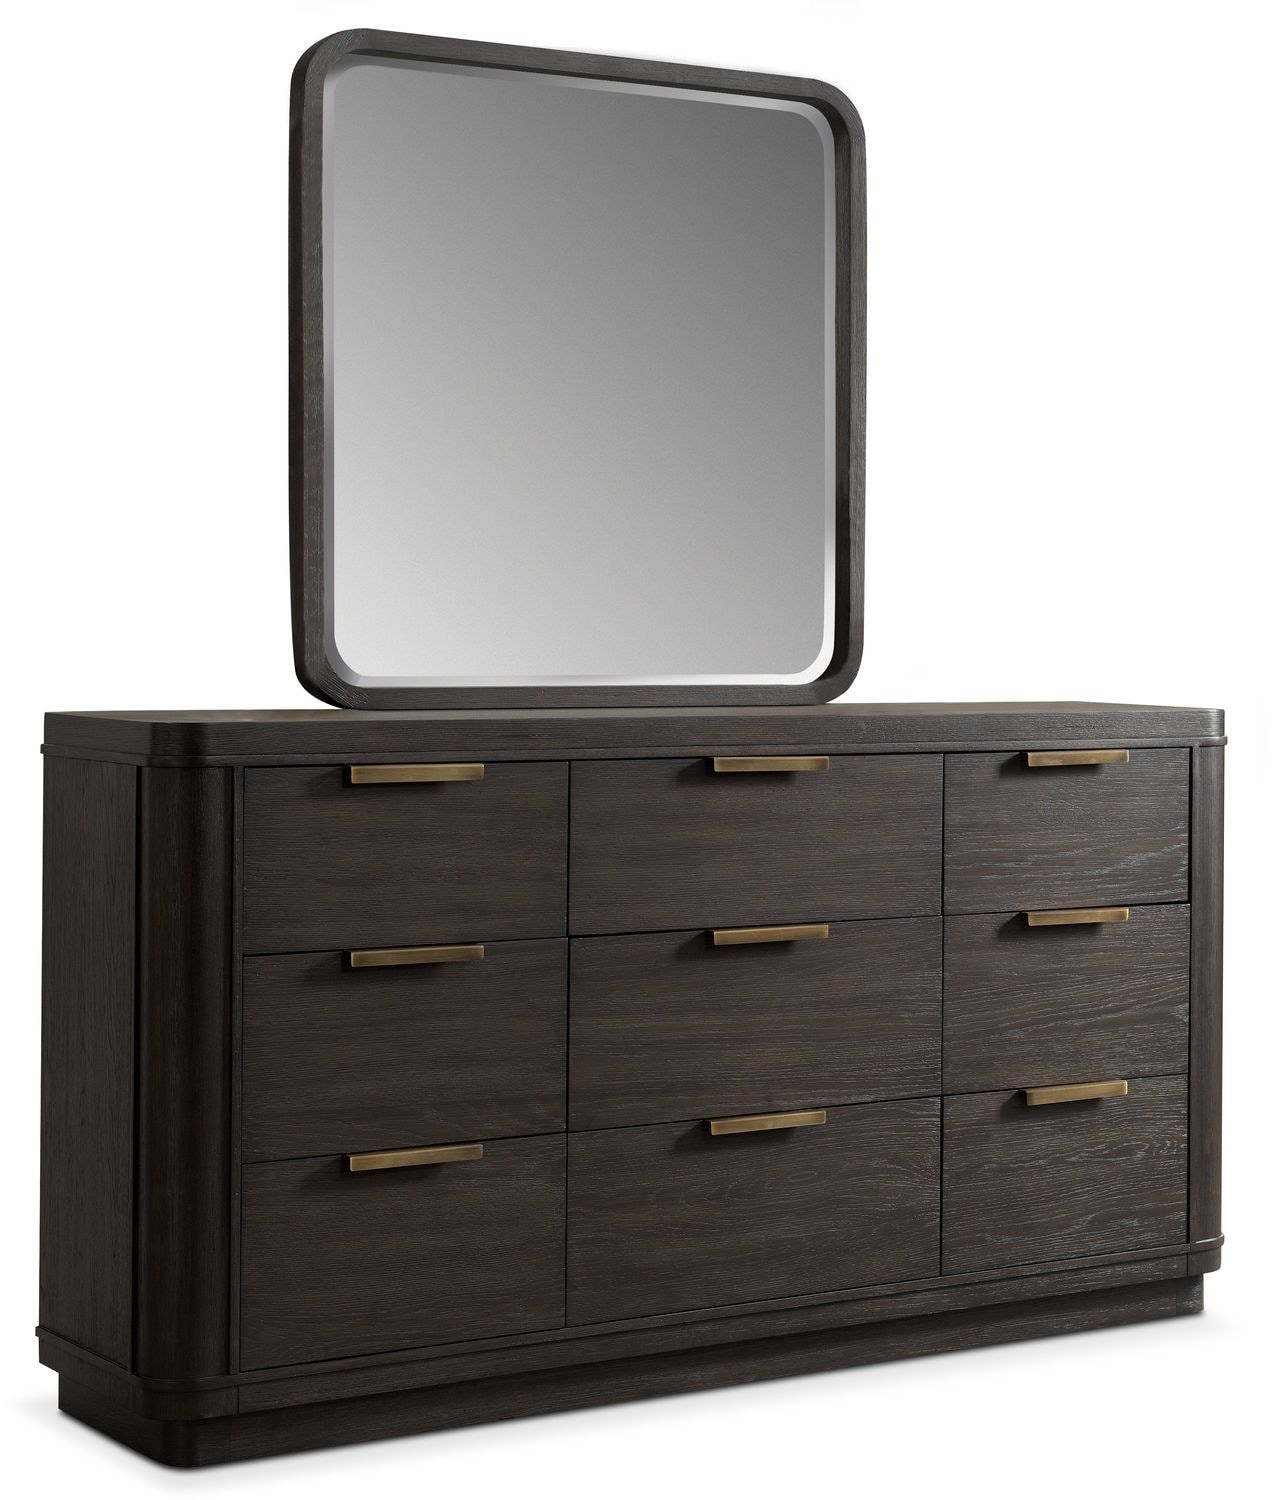 Malibu Dresser and Mirror - Umber